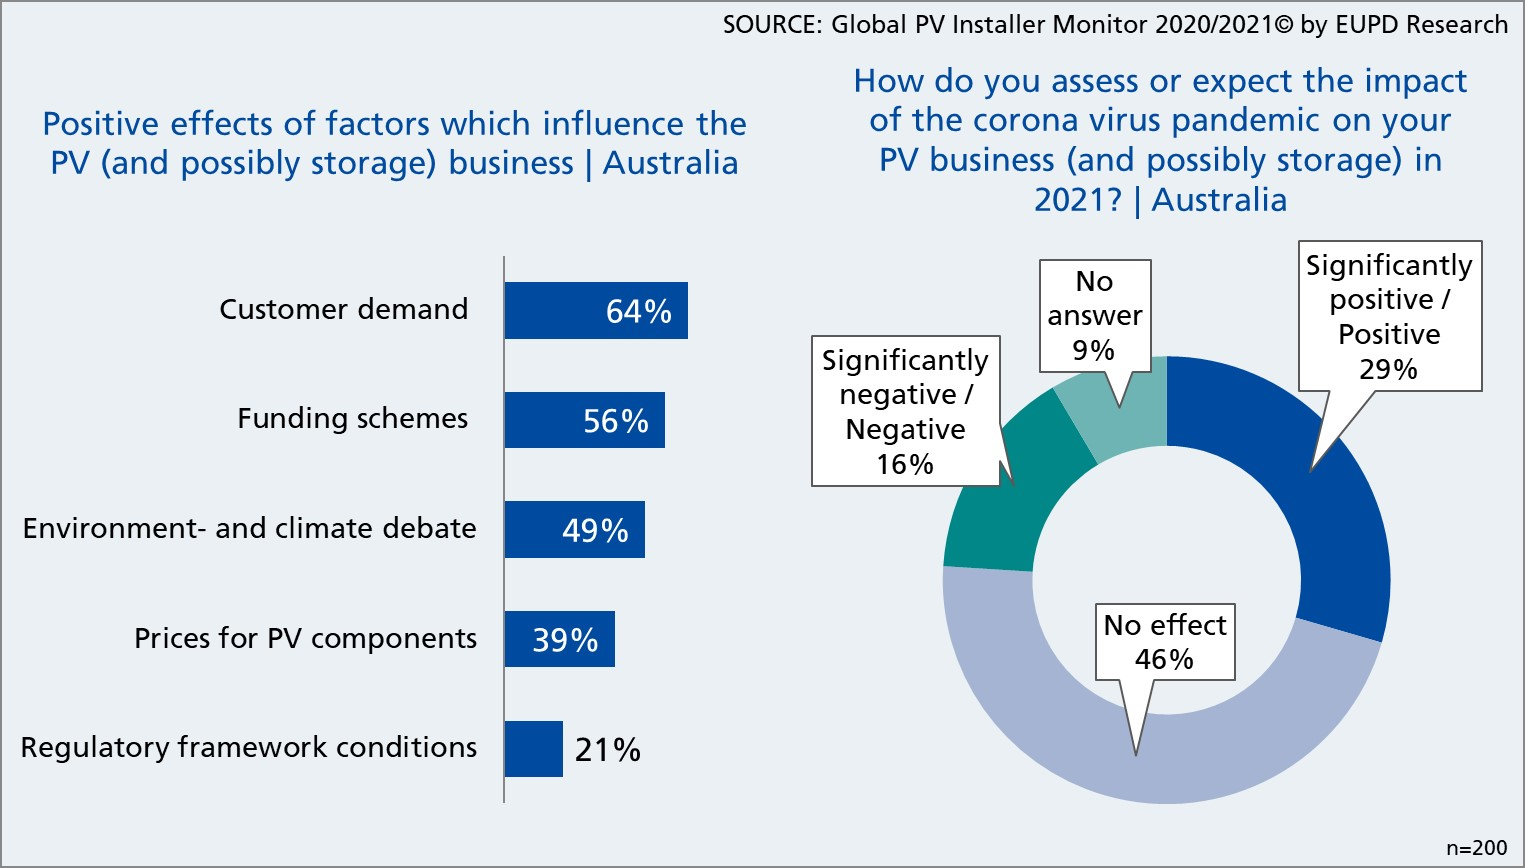 Positive aspects affecting solar and storage business